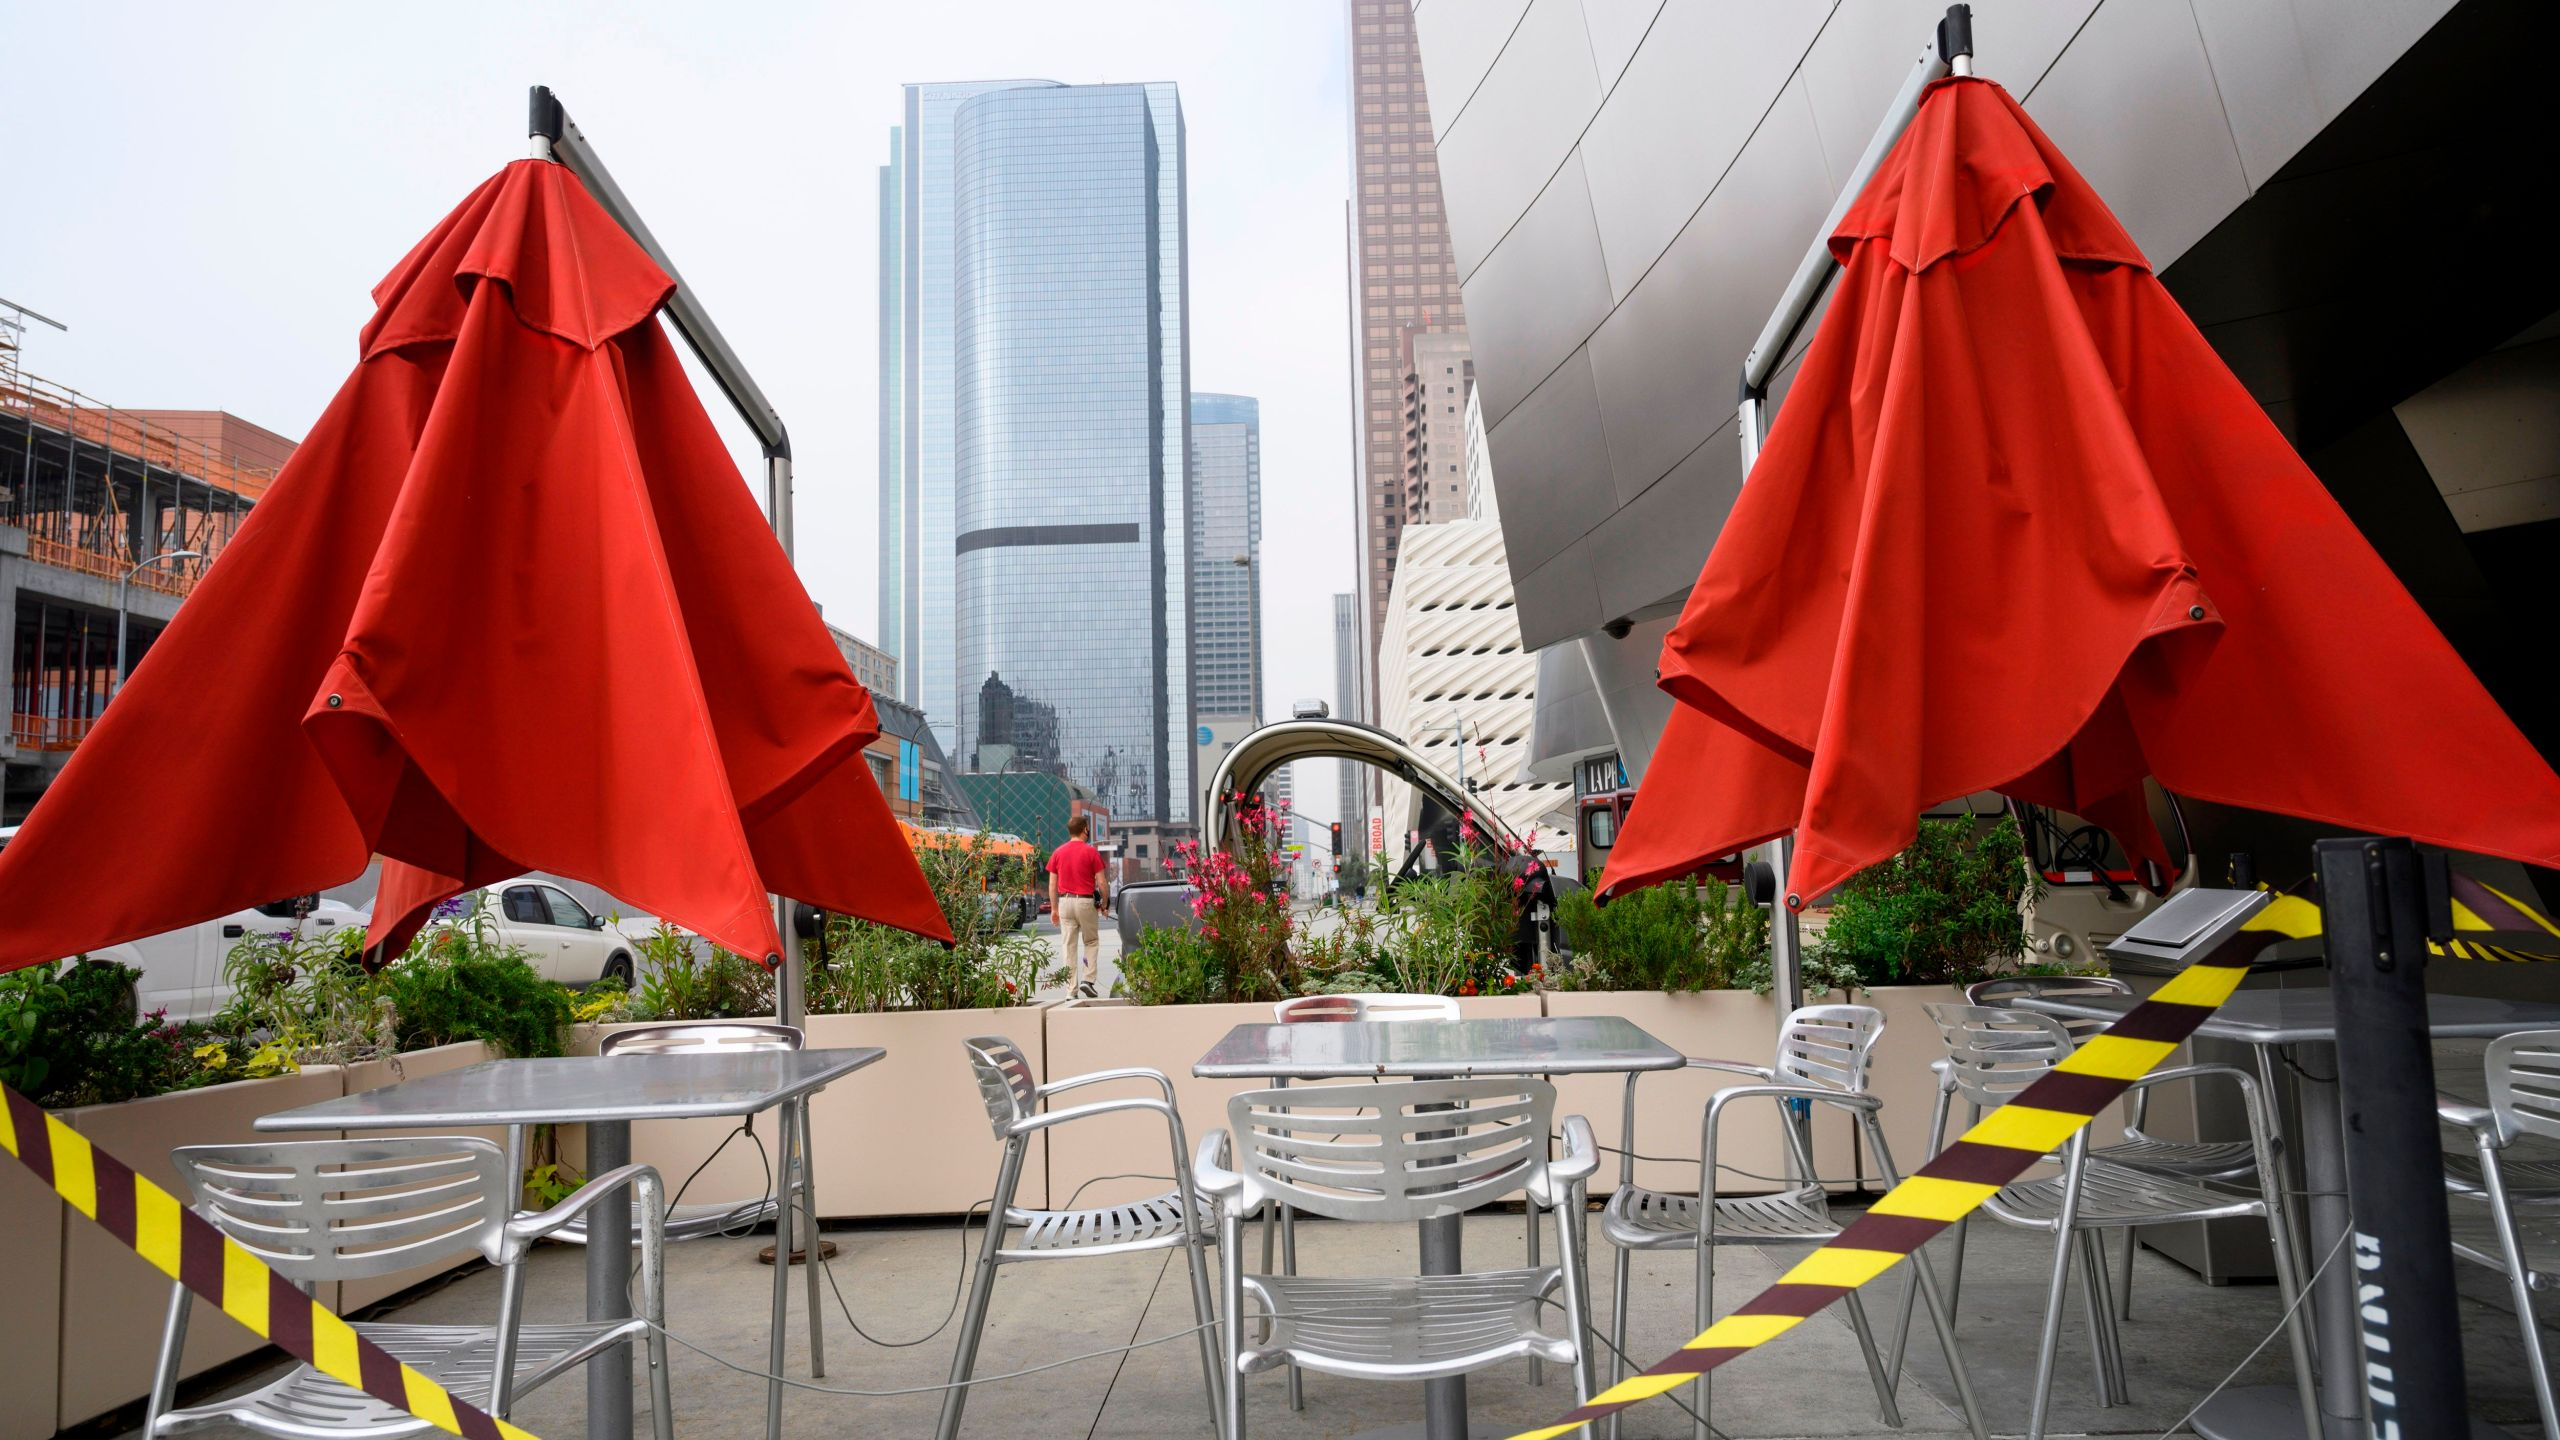 Caution tape surrounds closed outdoor restaurant cafe seating in front of the Walt Disney Concert Hall in downtown Los Angeles on April 30, 2020. (ROBYN BECK/AFP via Getty Images)